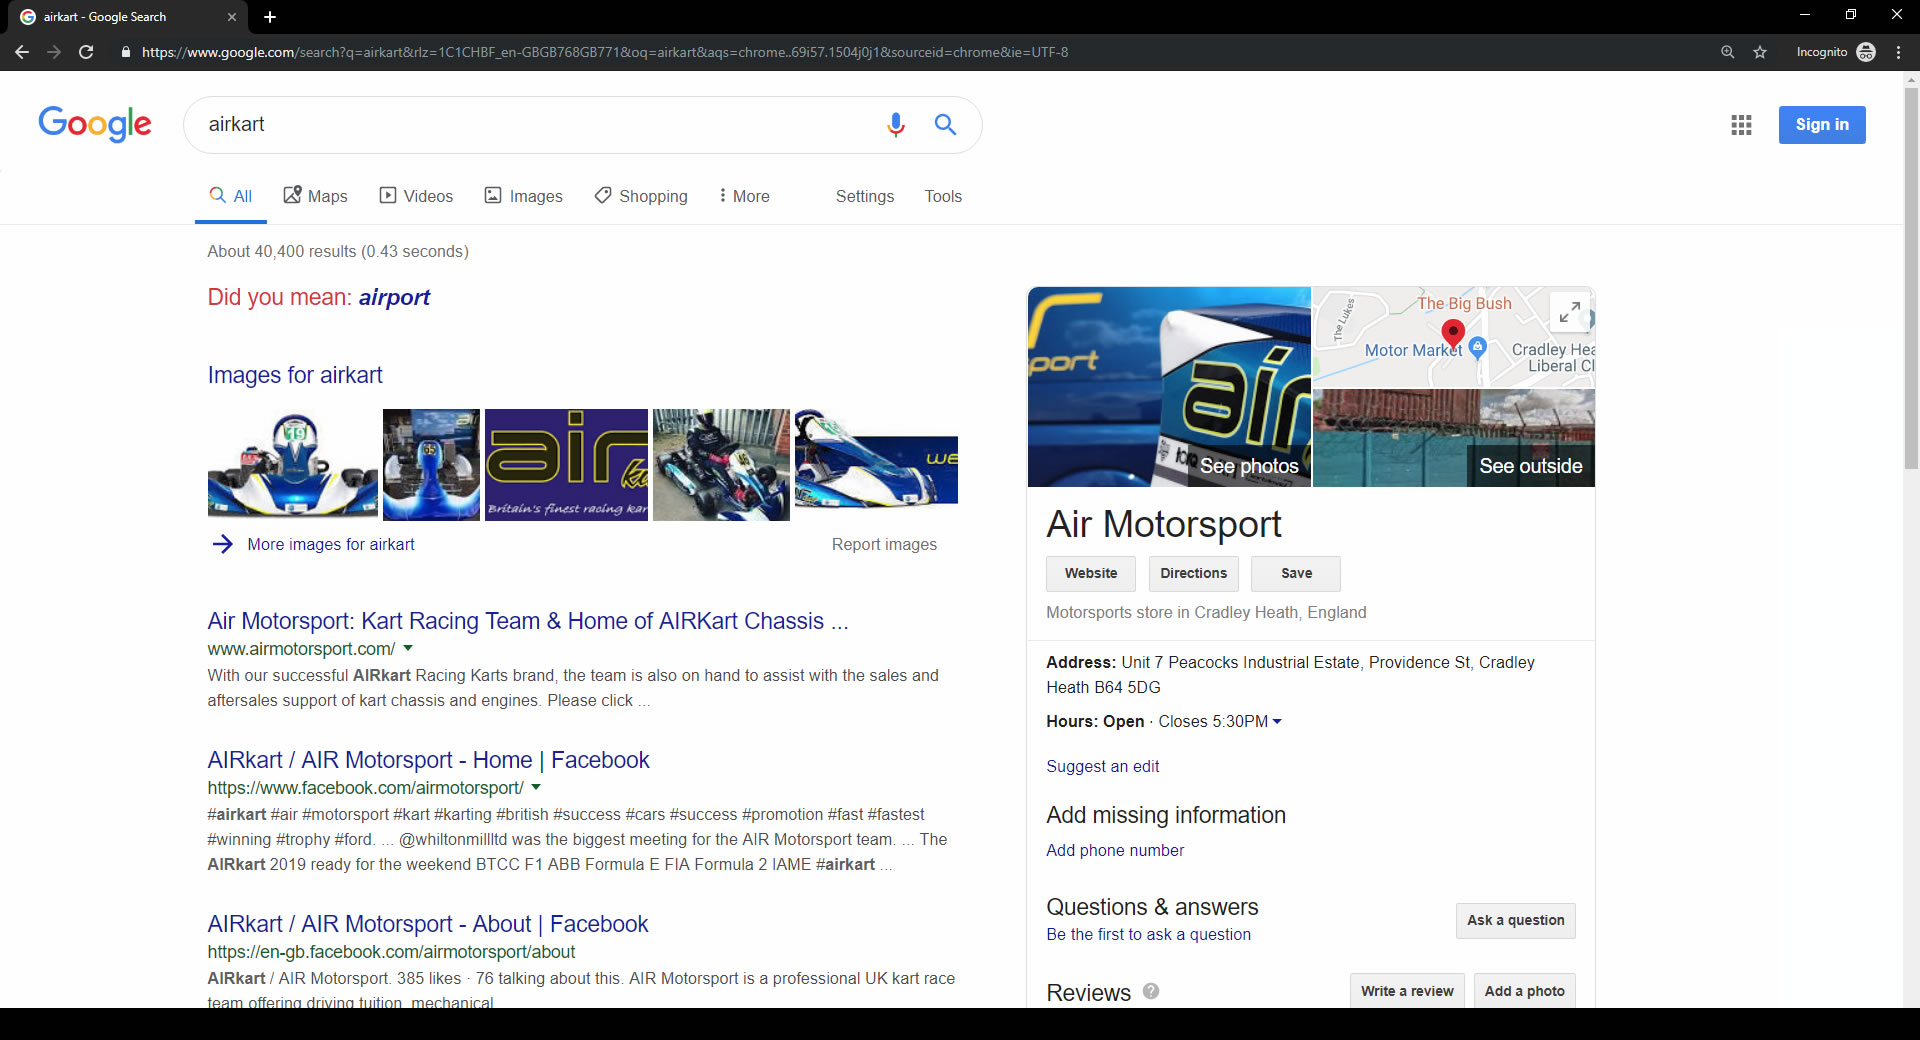 Airkart Images in Search Results